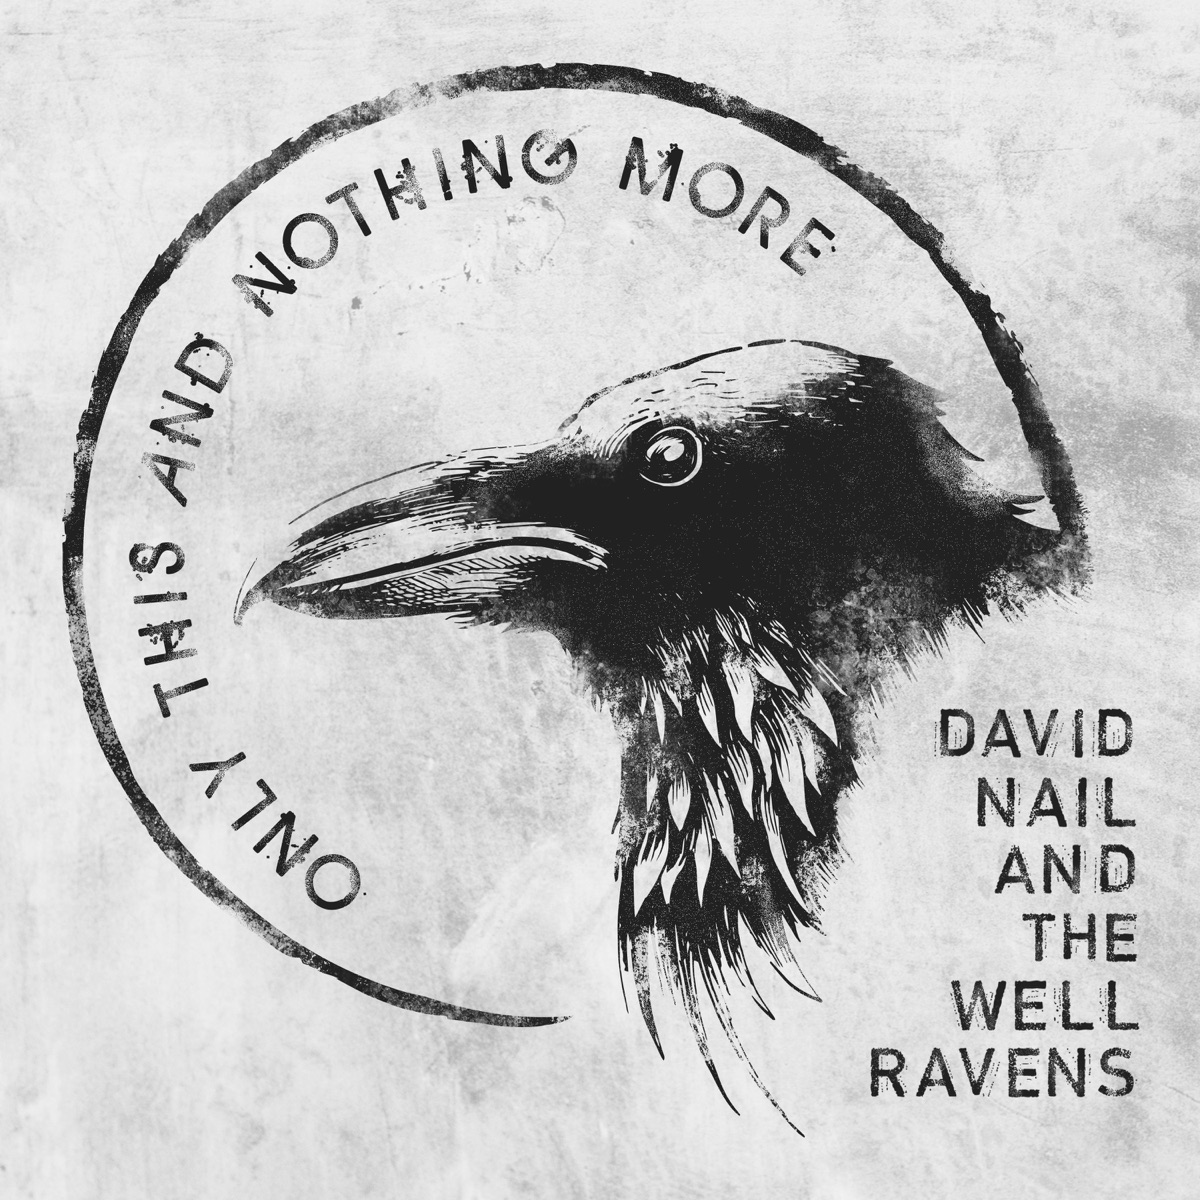 Only This and Nothing More David Nail and The Well Ravens CD cover